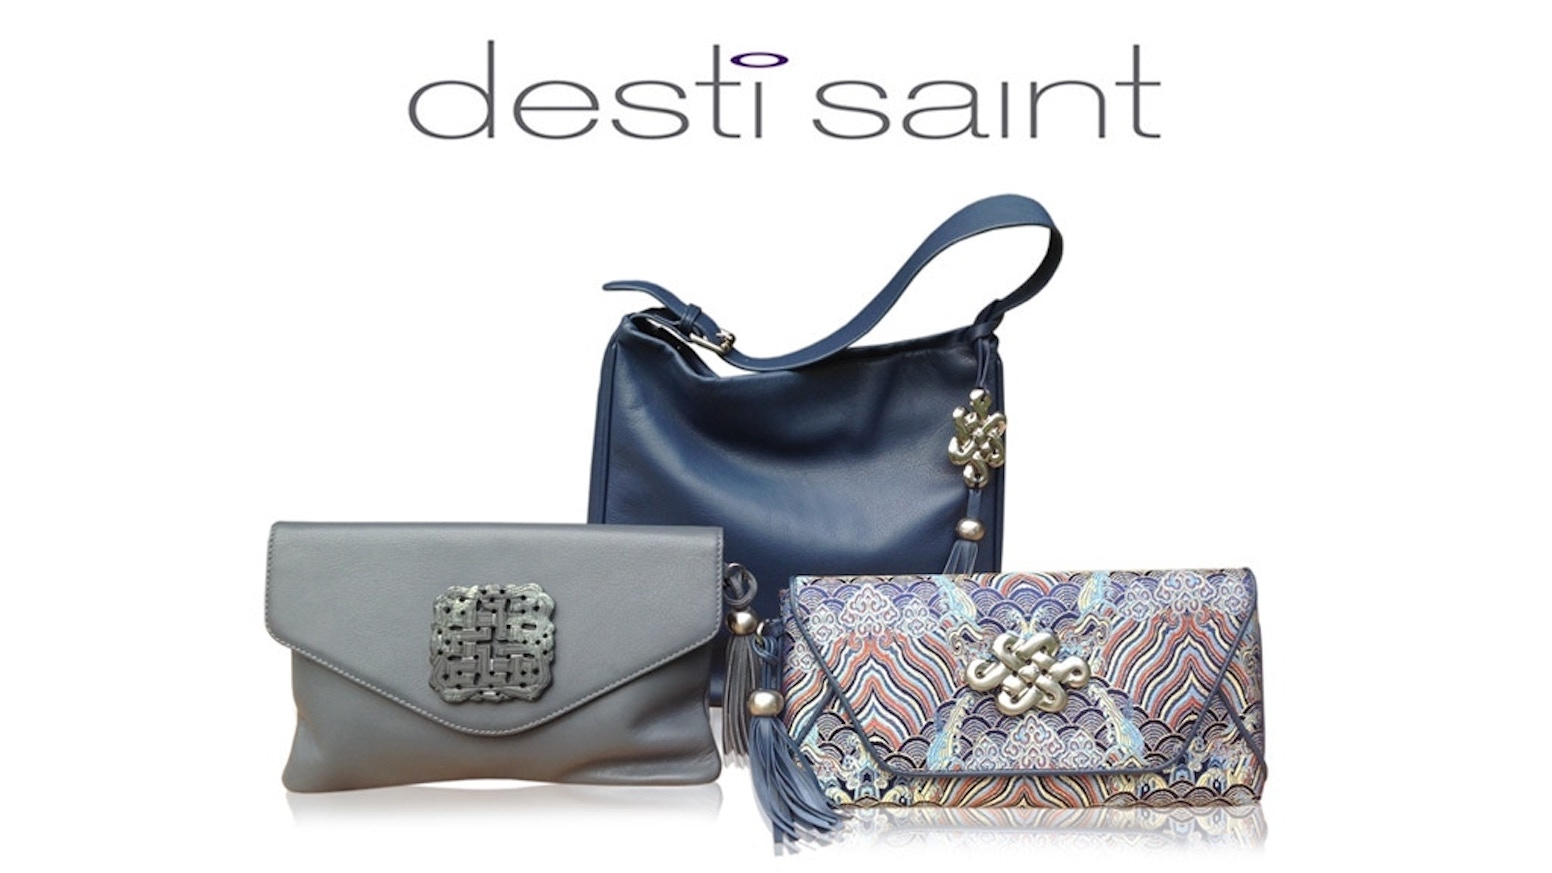 Beautifully Crafted Handbags With Unique Asian Detailing A Love Knot Symbolising Unbreakable Bonds Is Featured